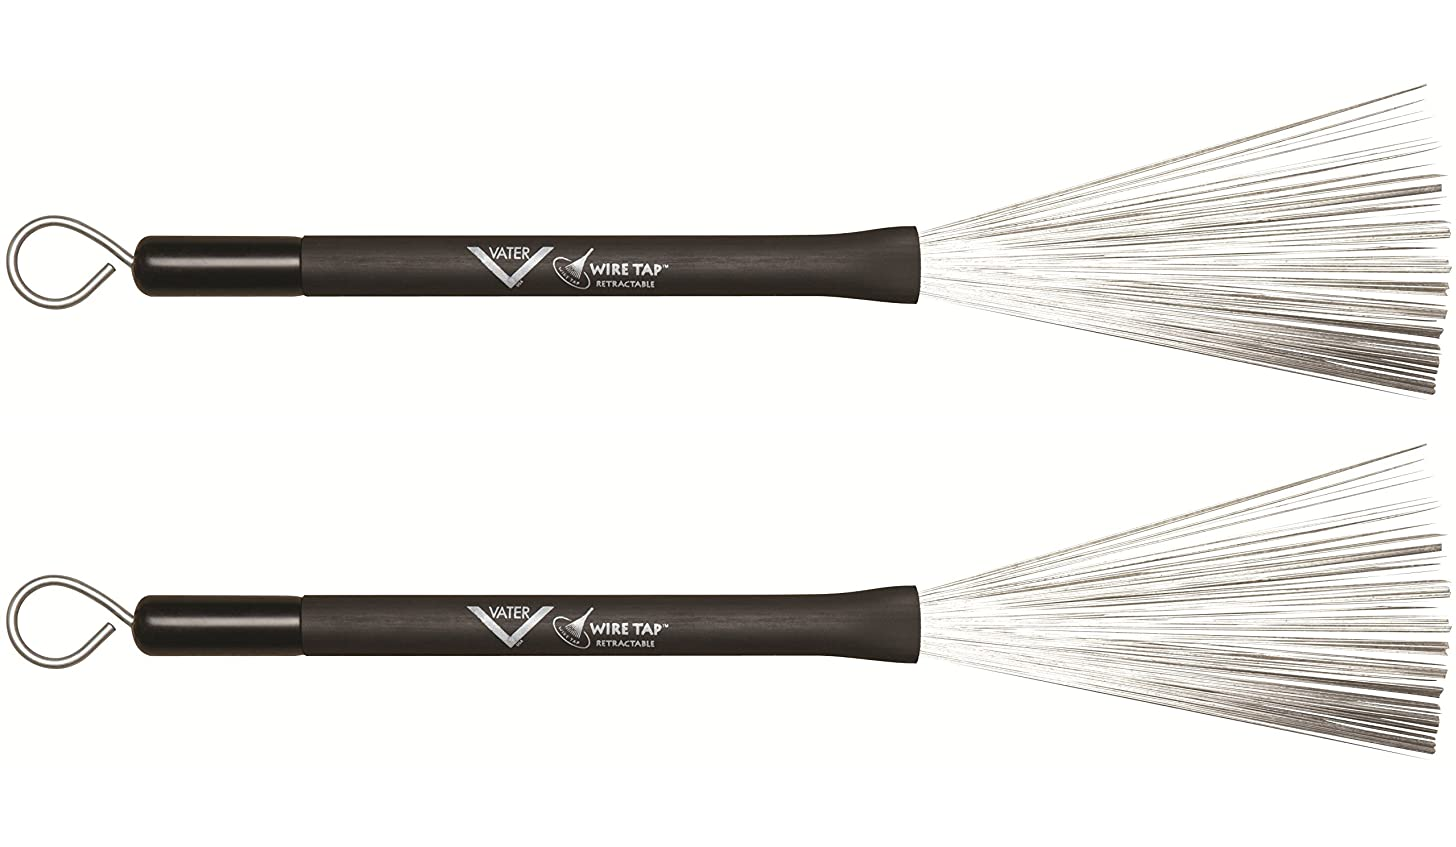 Vater VWTR Retractable Wire Brushes